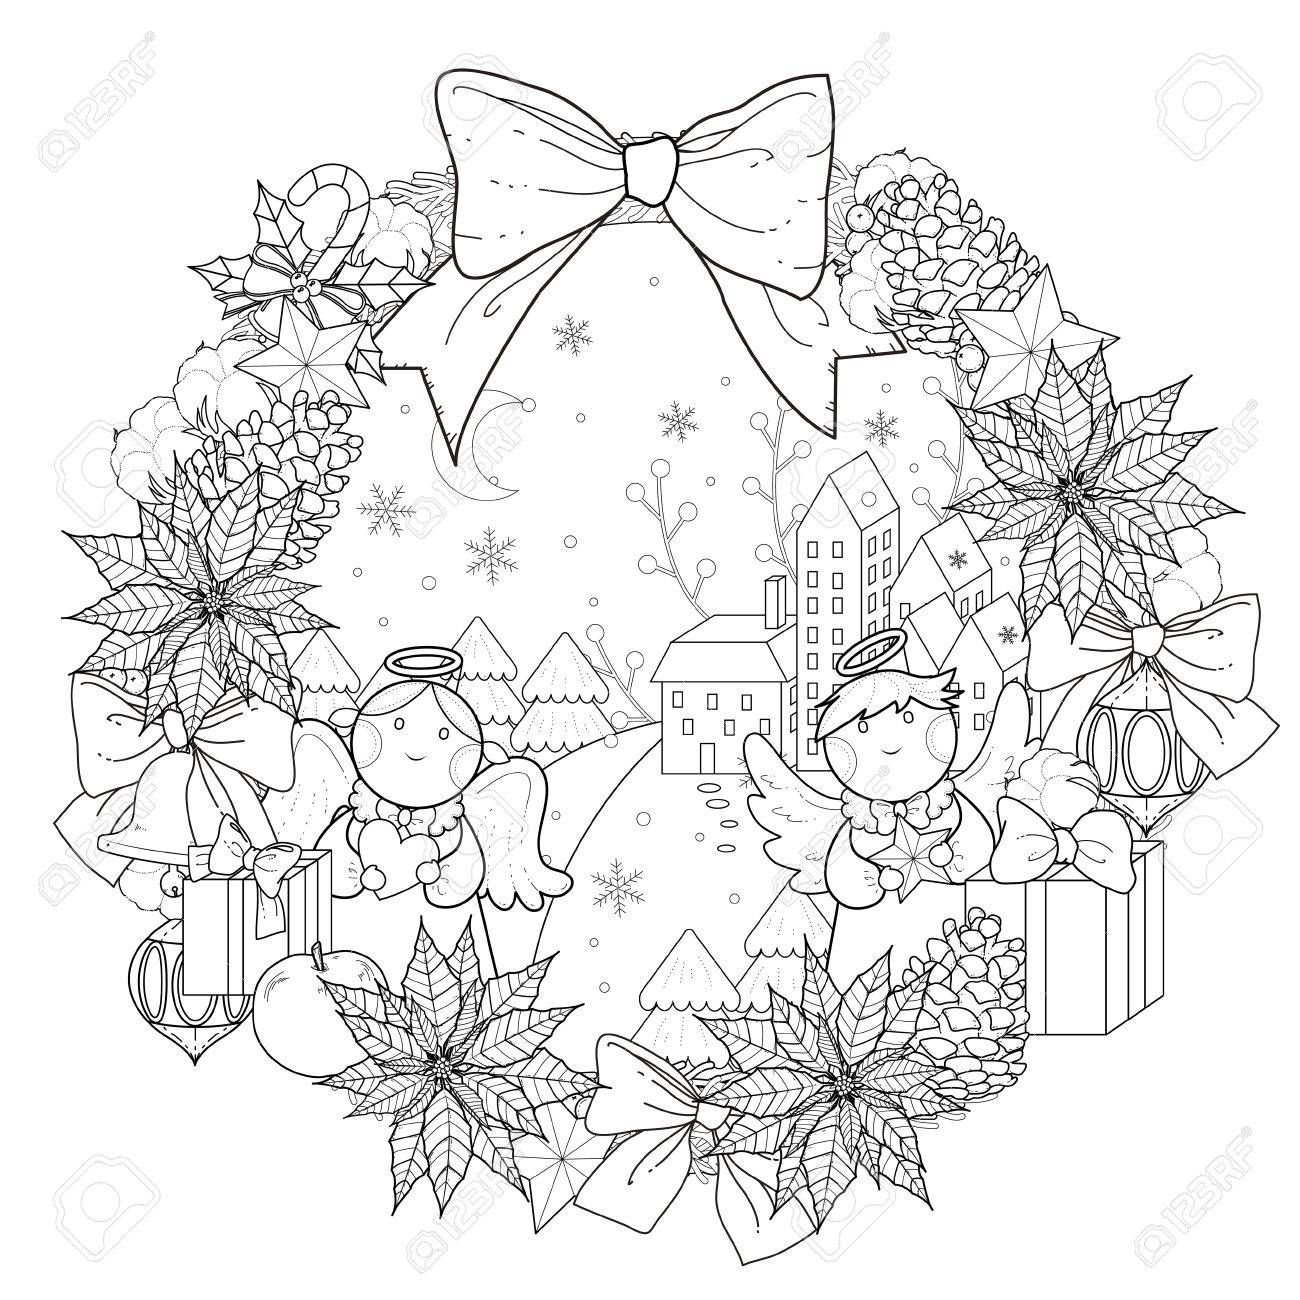 Christmas wreath coloring page with decorations in